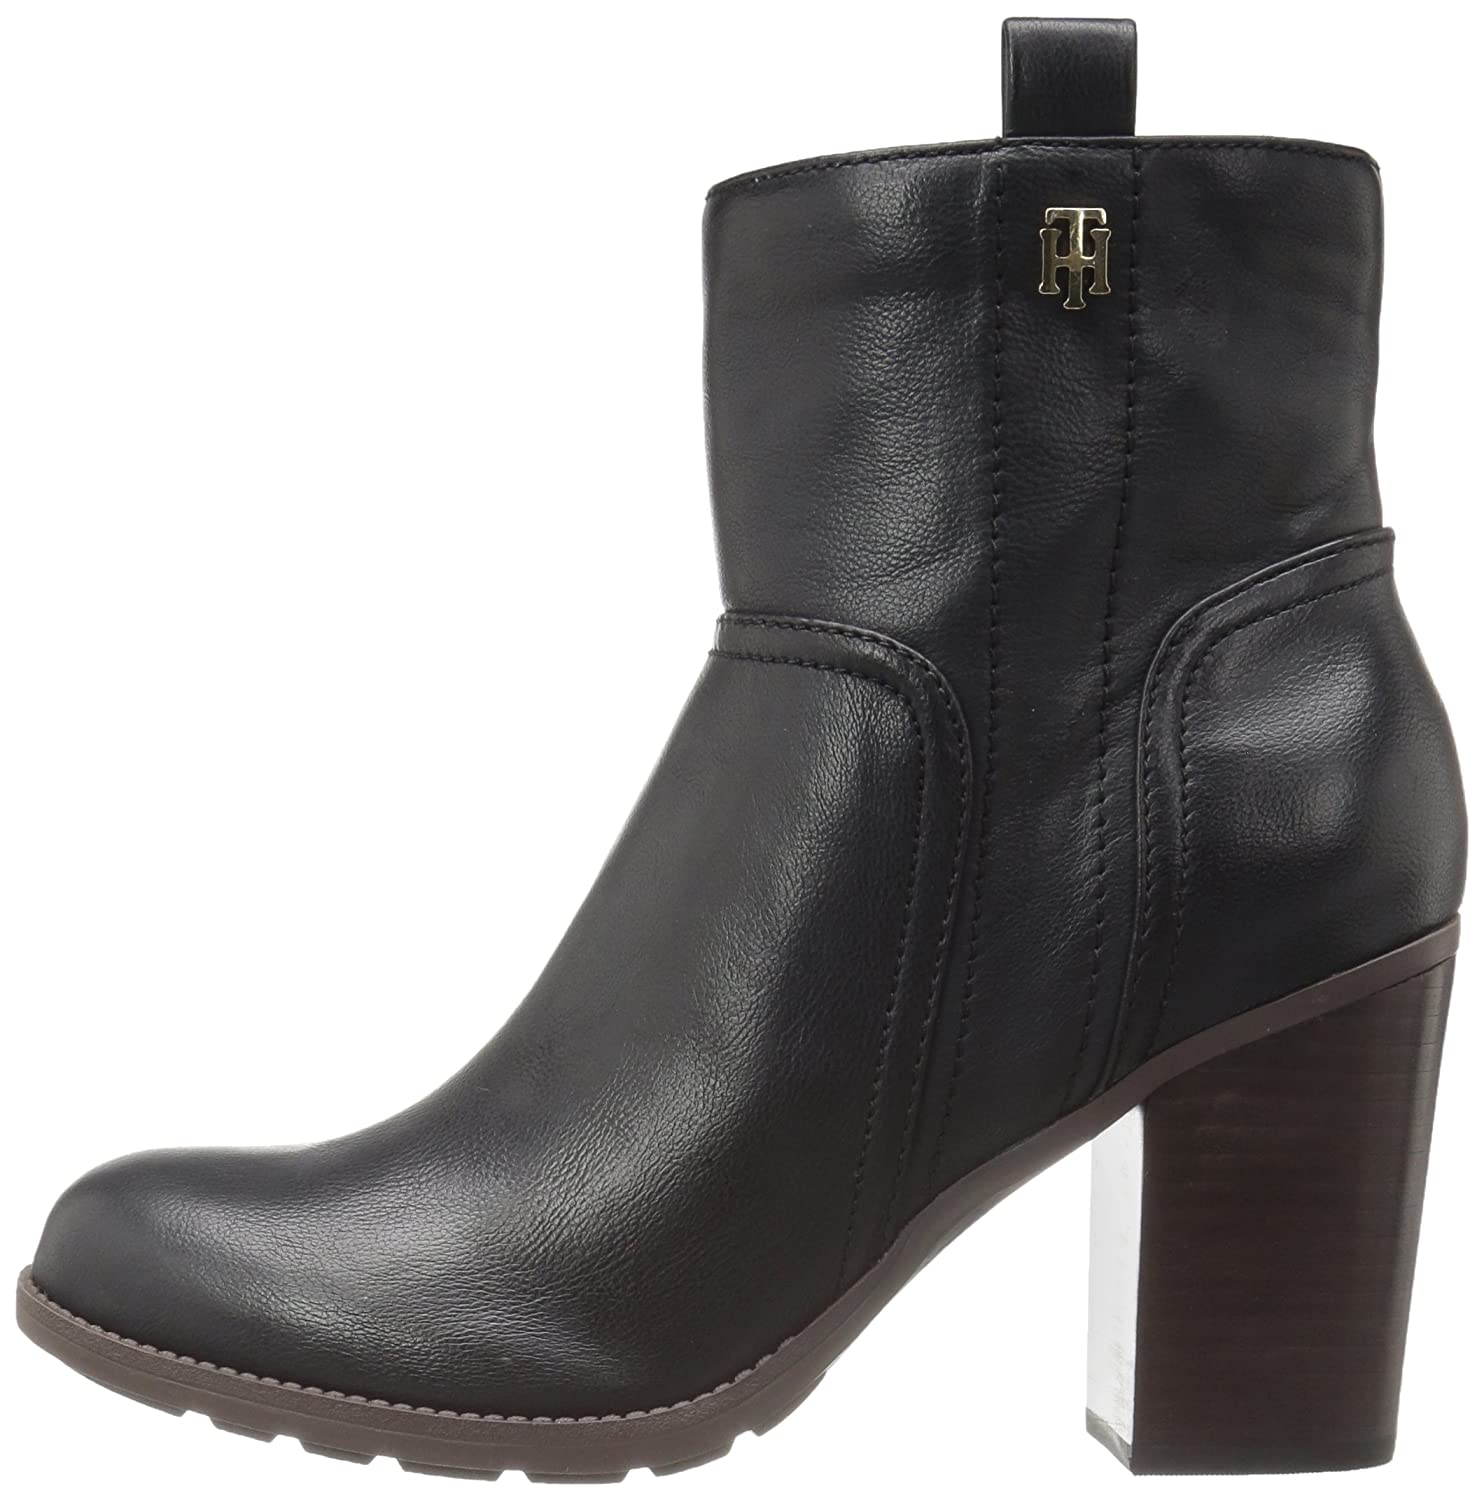 ffd372592e4f0 Tommy Hilfiger Women s Darcell Ankle Bootie  Amazon.co.uk  Shoes   Bags